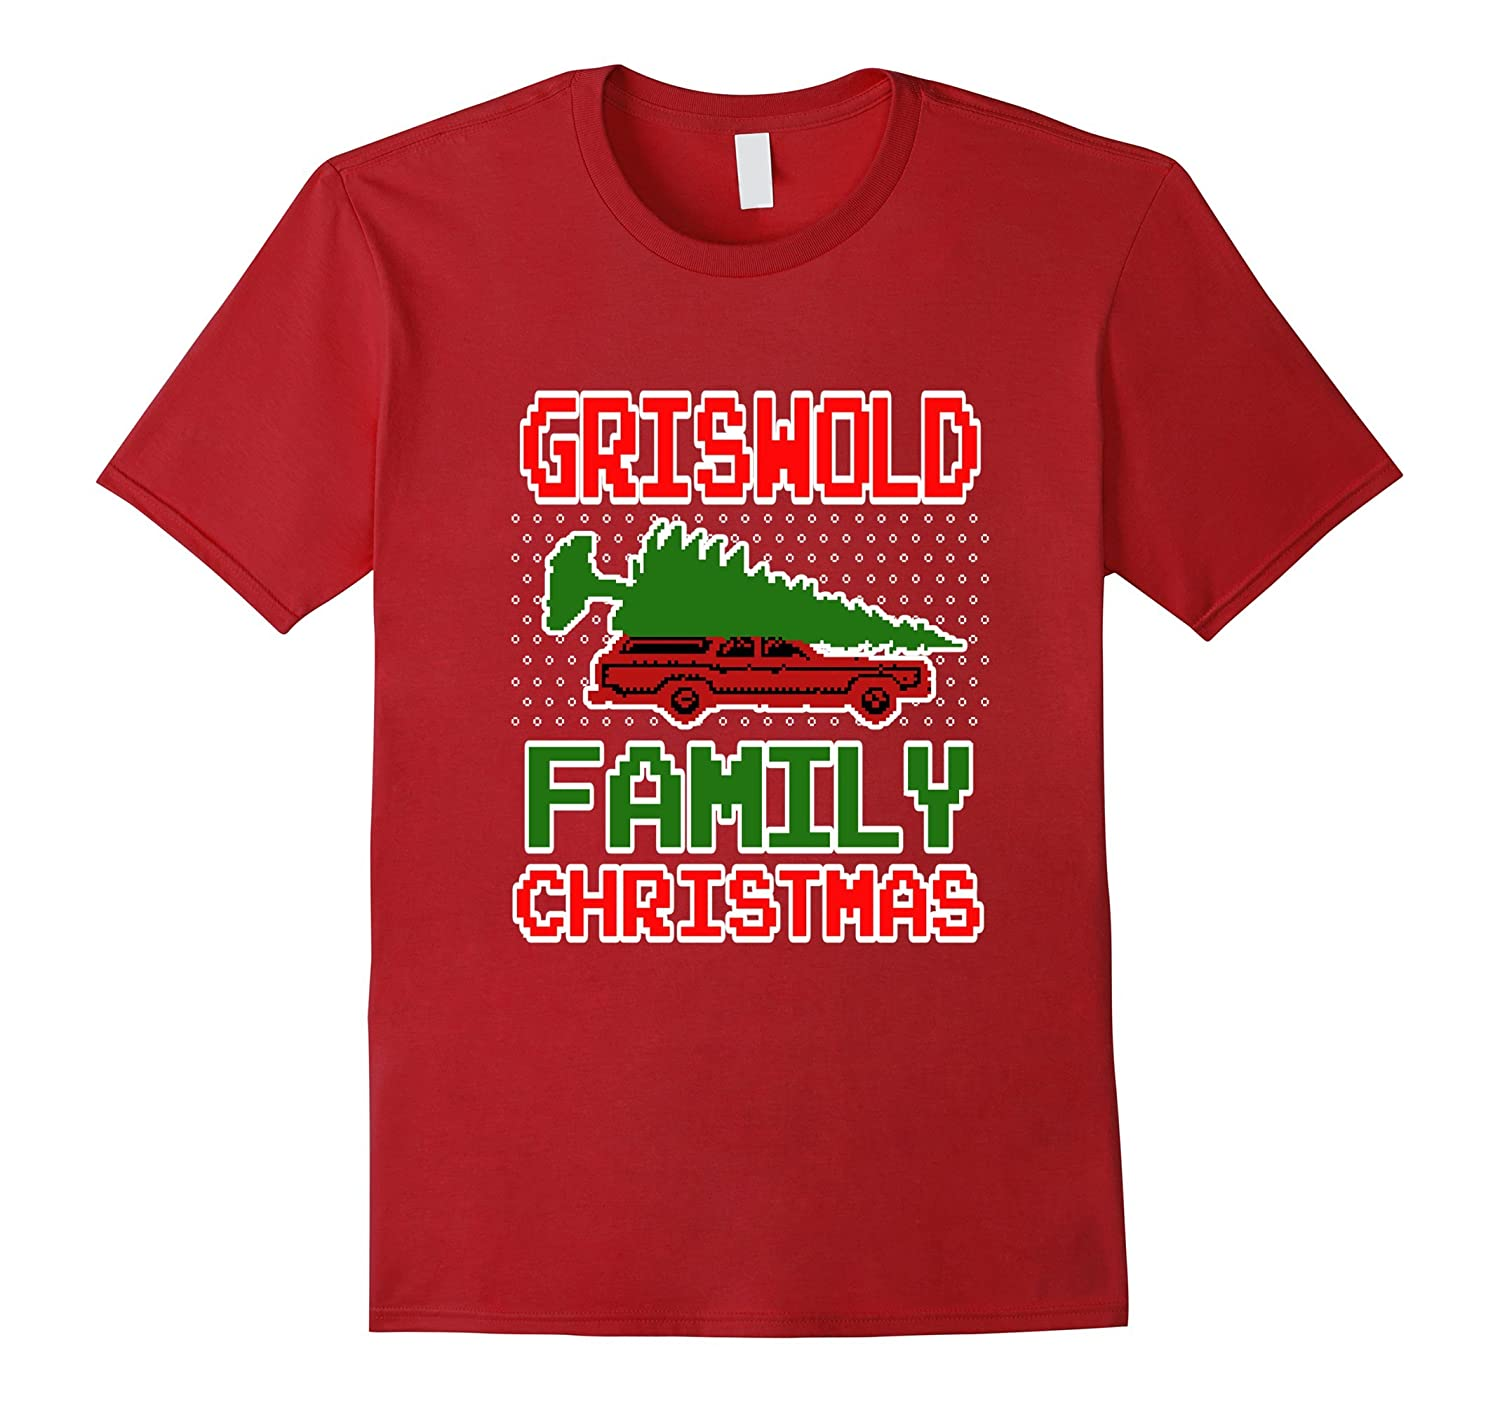 funny griswold family t shirt ugly christmas sweater - Griswold Ugly Christmas Sweater